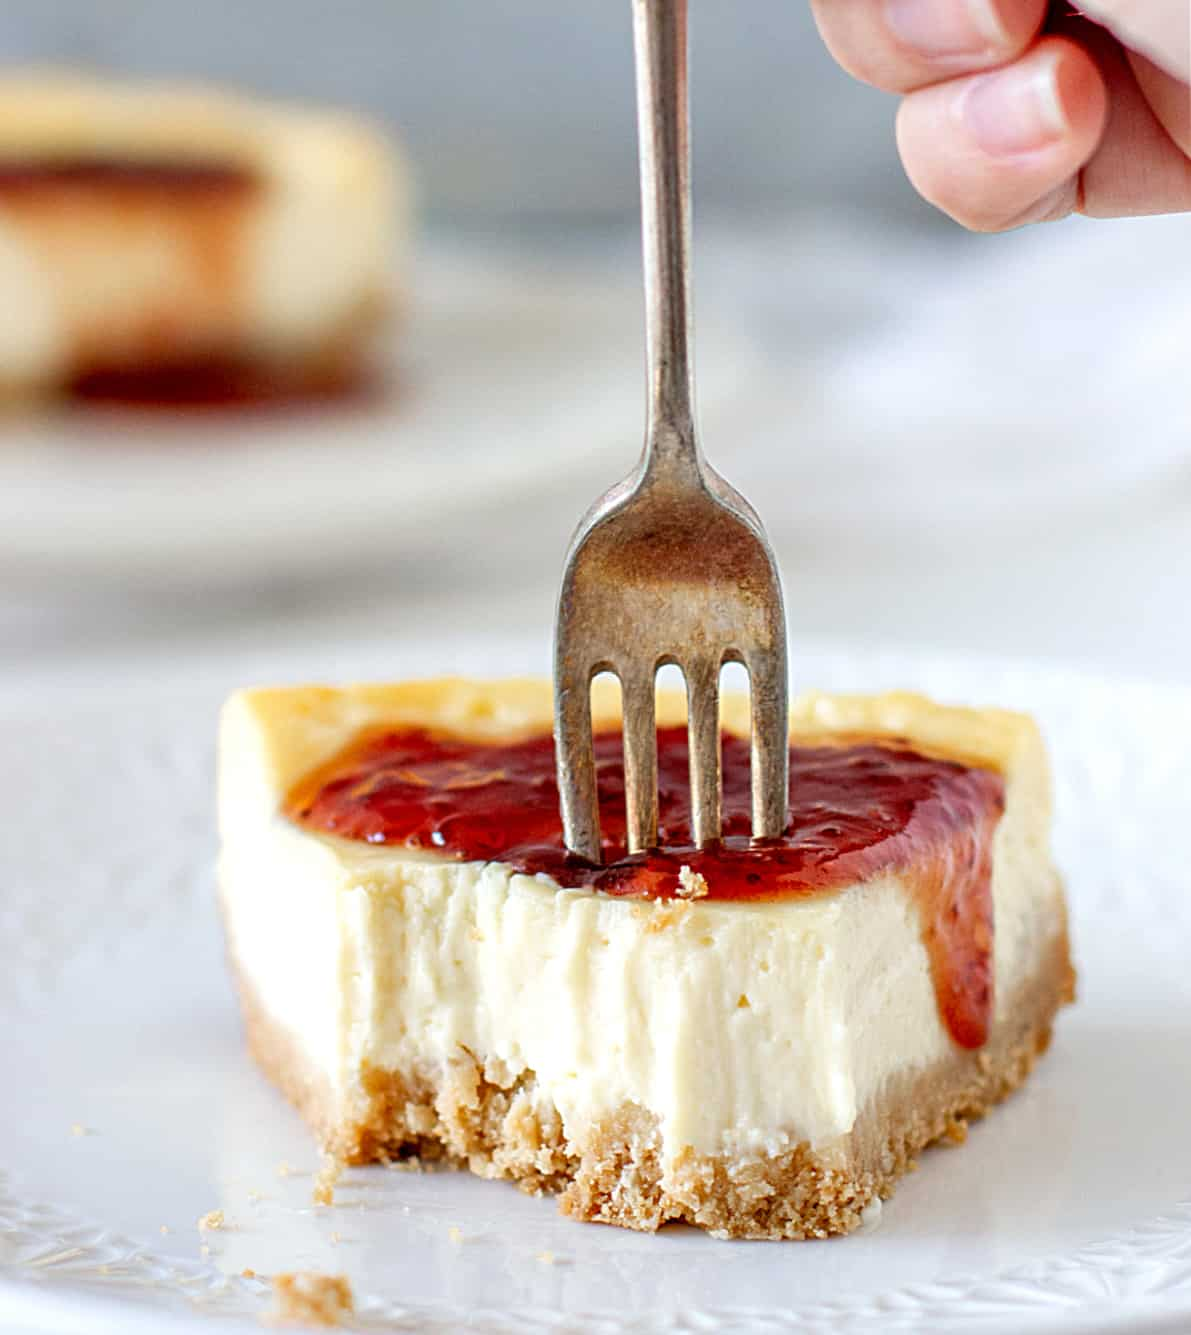 On a greyish background an eaten slice of cheesecake with silver fork coming out and red jam